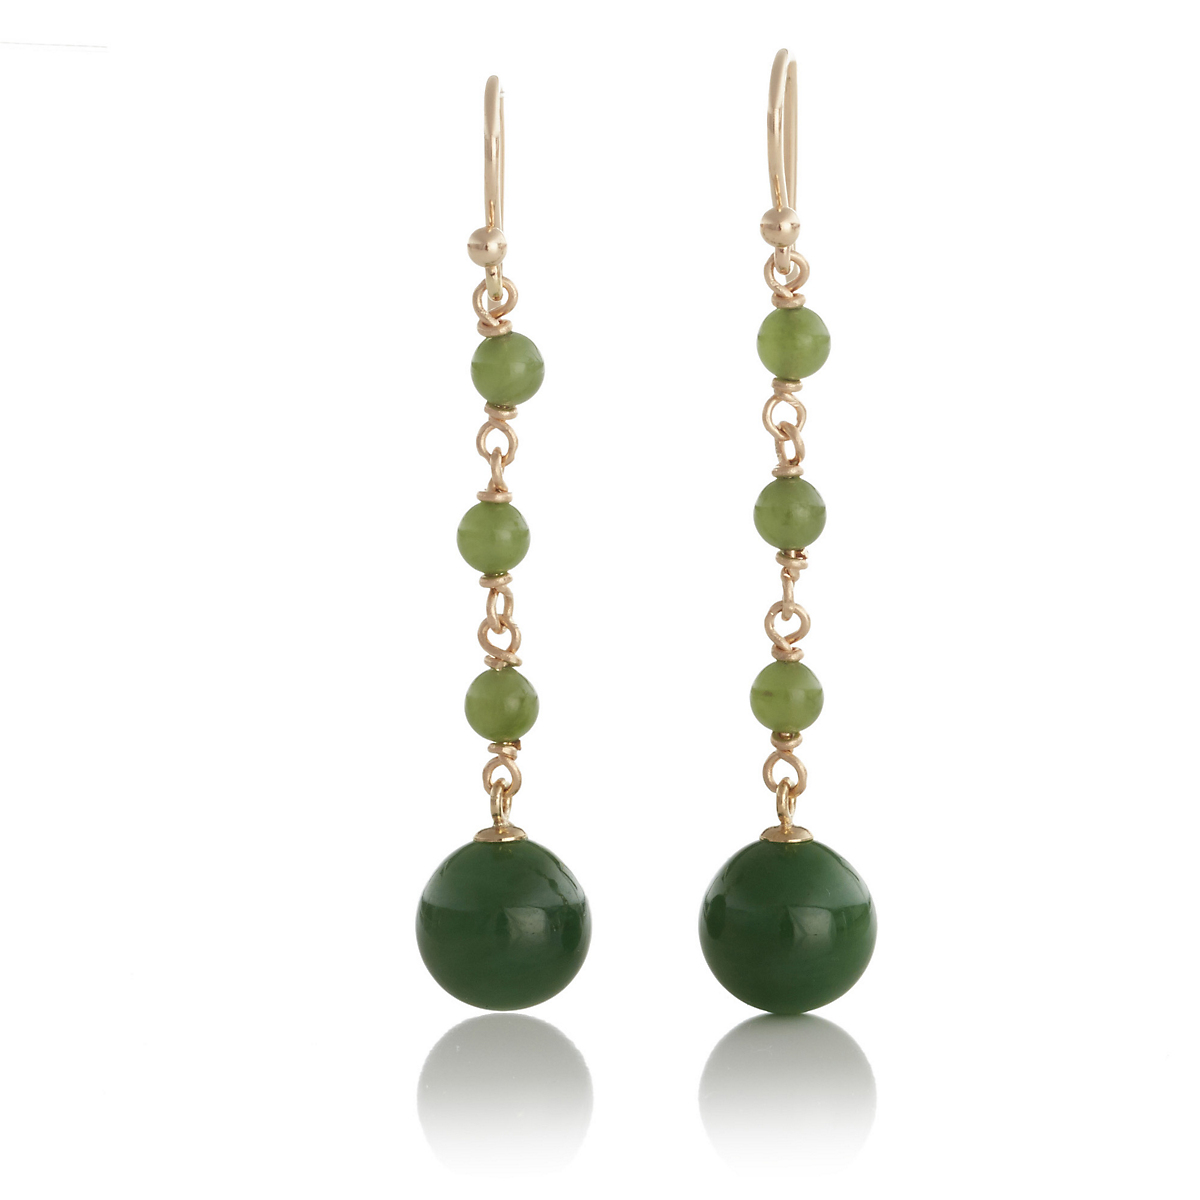 Gump's Green Nephrite Jade Bead Long Drop Earrings